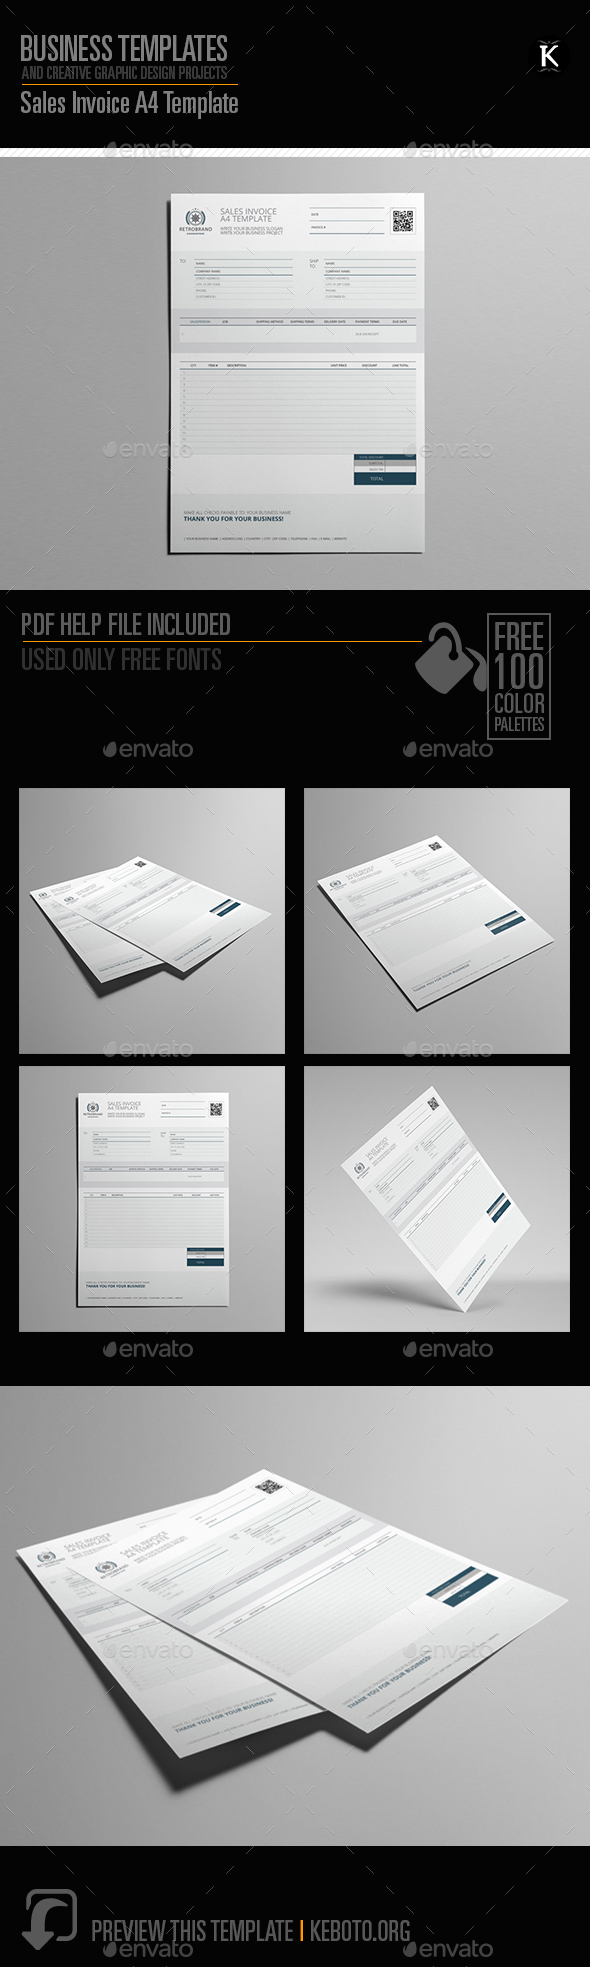 Sales Invoice A4 Template - Miscellaneous Print Templates